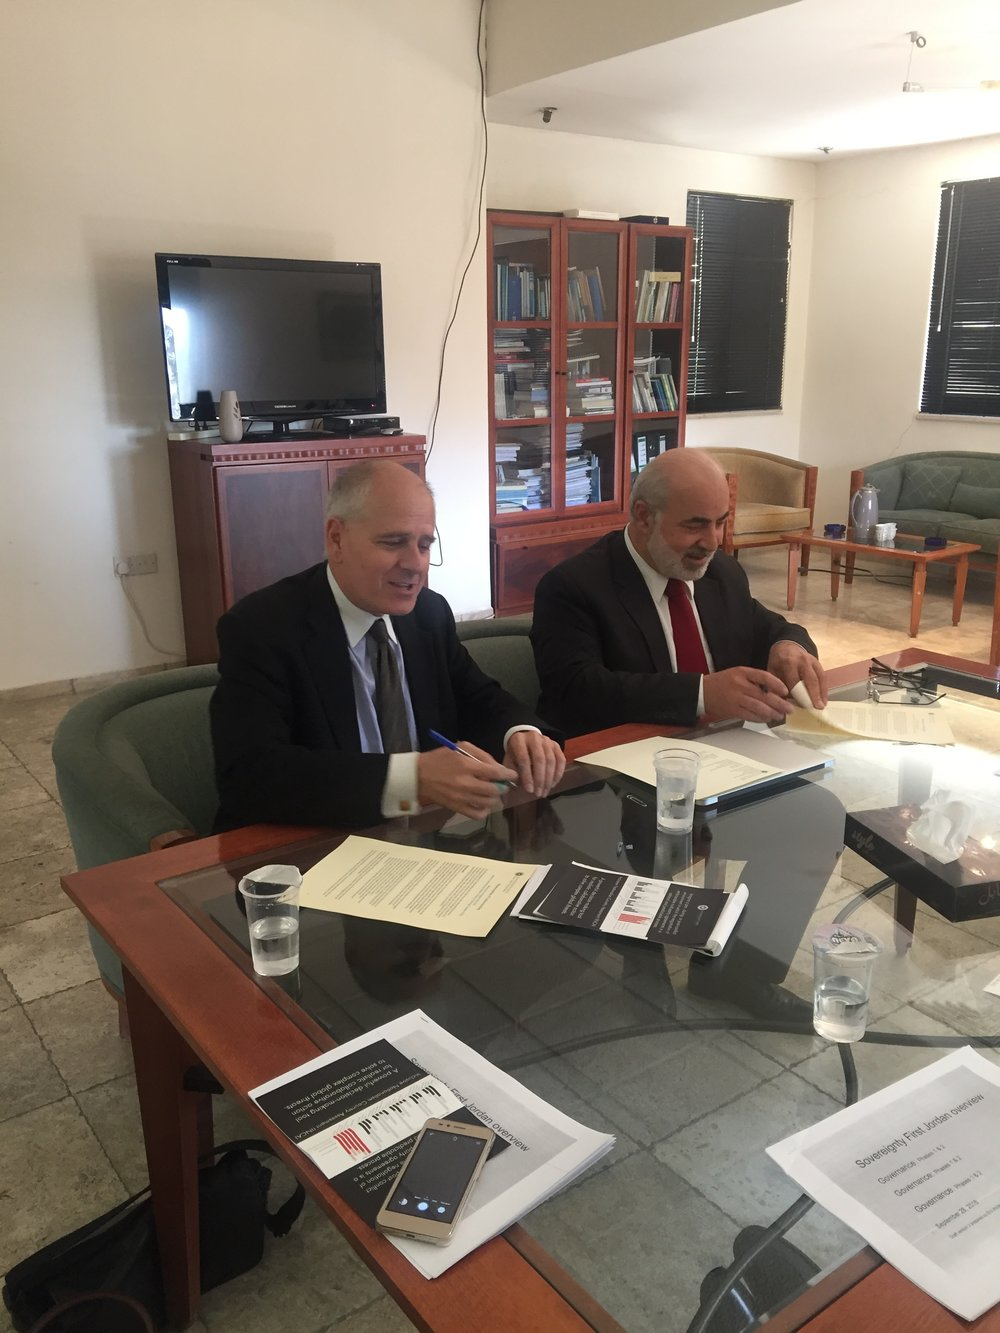 Two of Syada Awalan's partners, Dr. Musa Shteiwi (Director of the University of Jordan's Center for Strategic Studies), and Dr. Eric Wolterstorff (Sovereignty First) sign their memorandum of understanding.